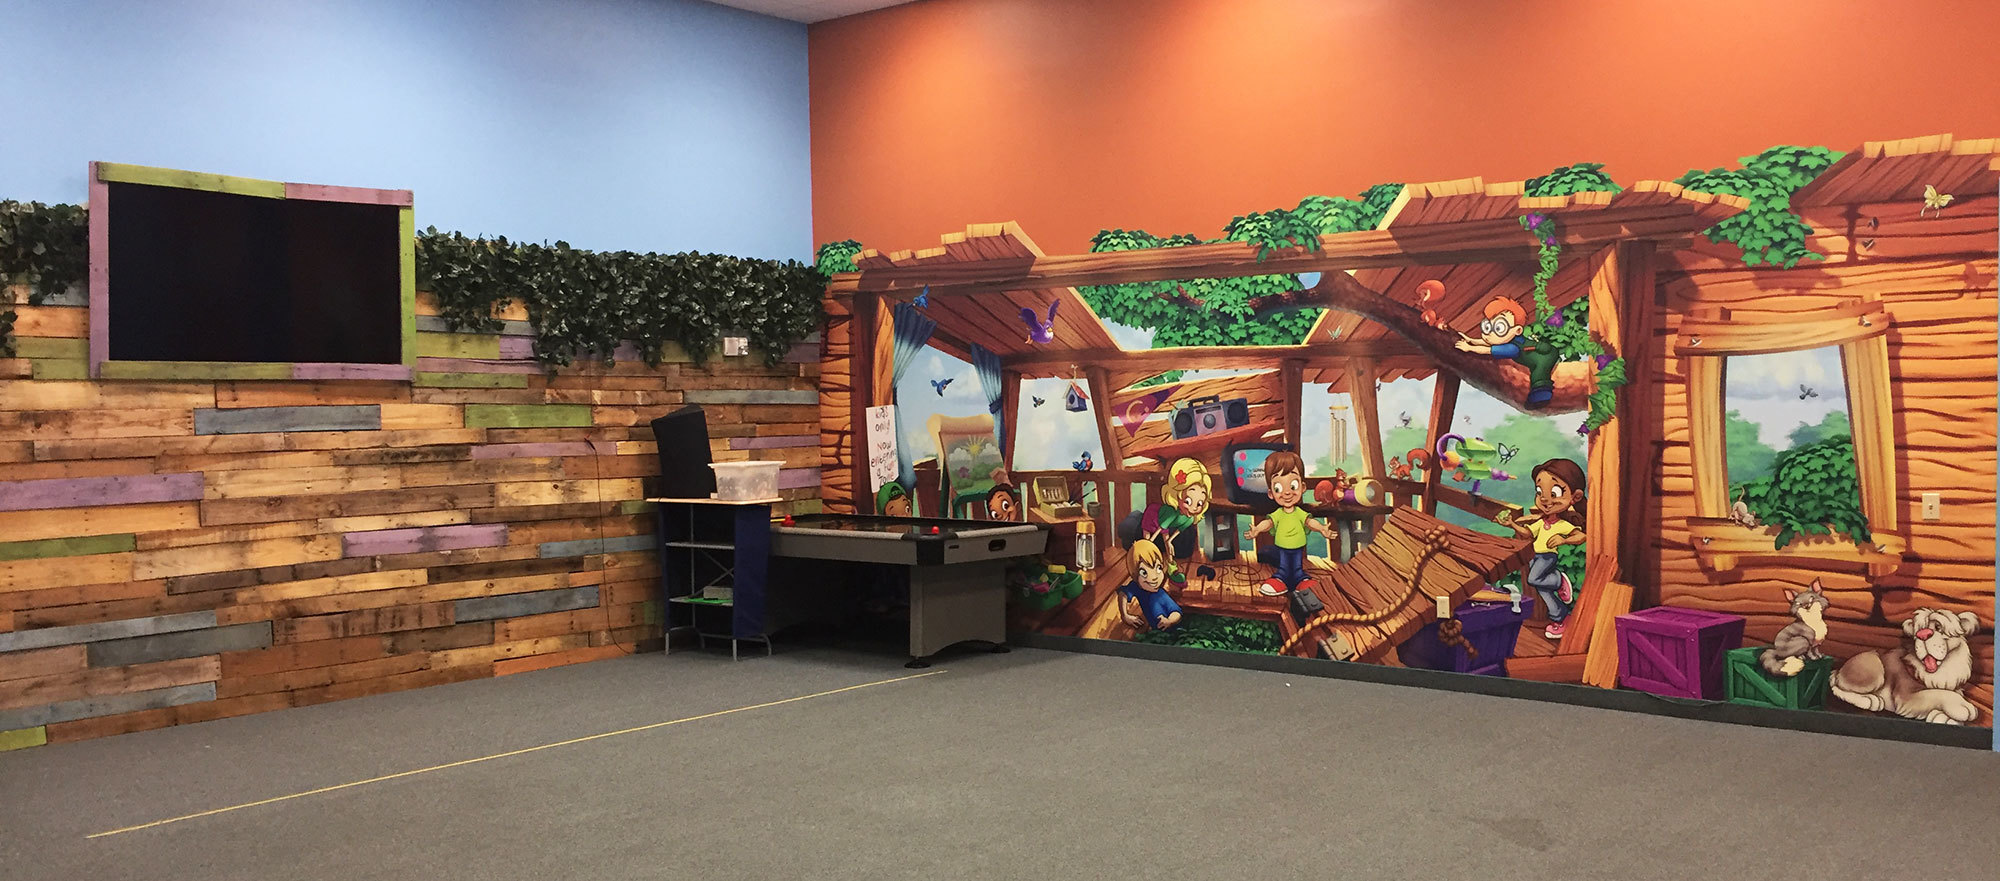 Treehouse Themed Wallcovering at Meadowbrook Church